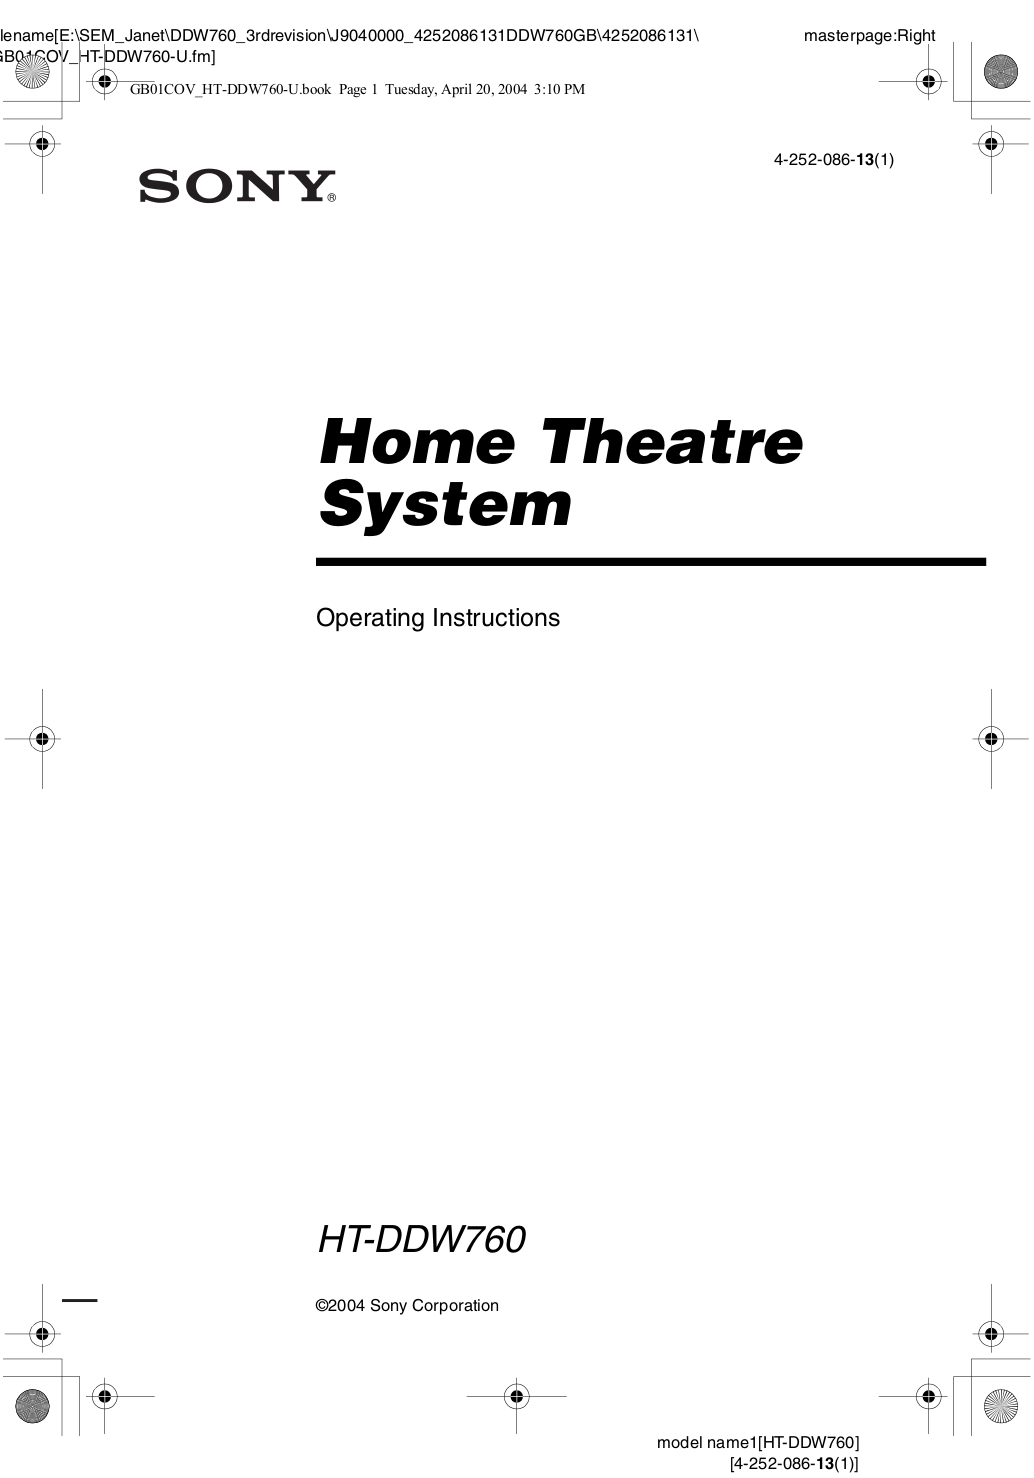 Download free pdf for Sony HT-DDW760 Home Theater manual